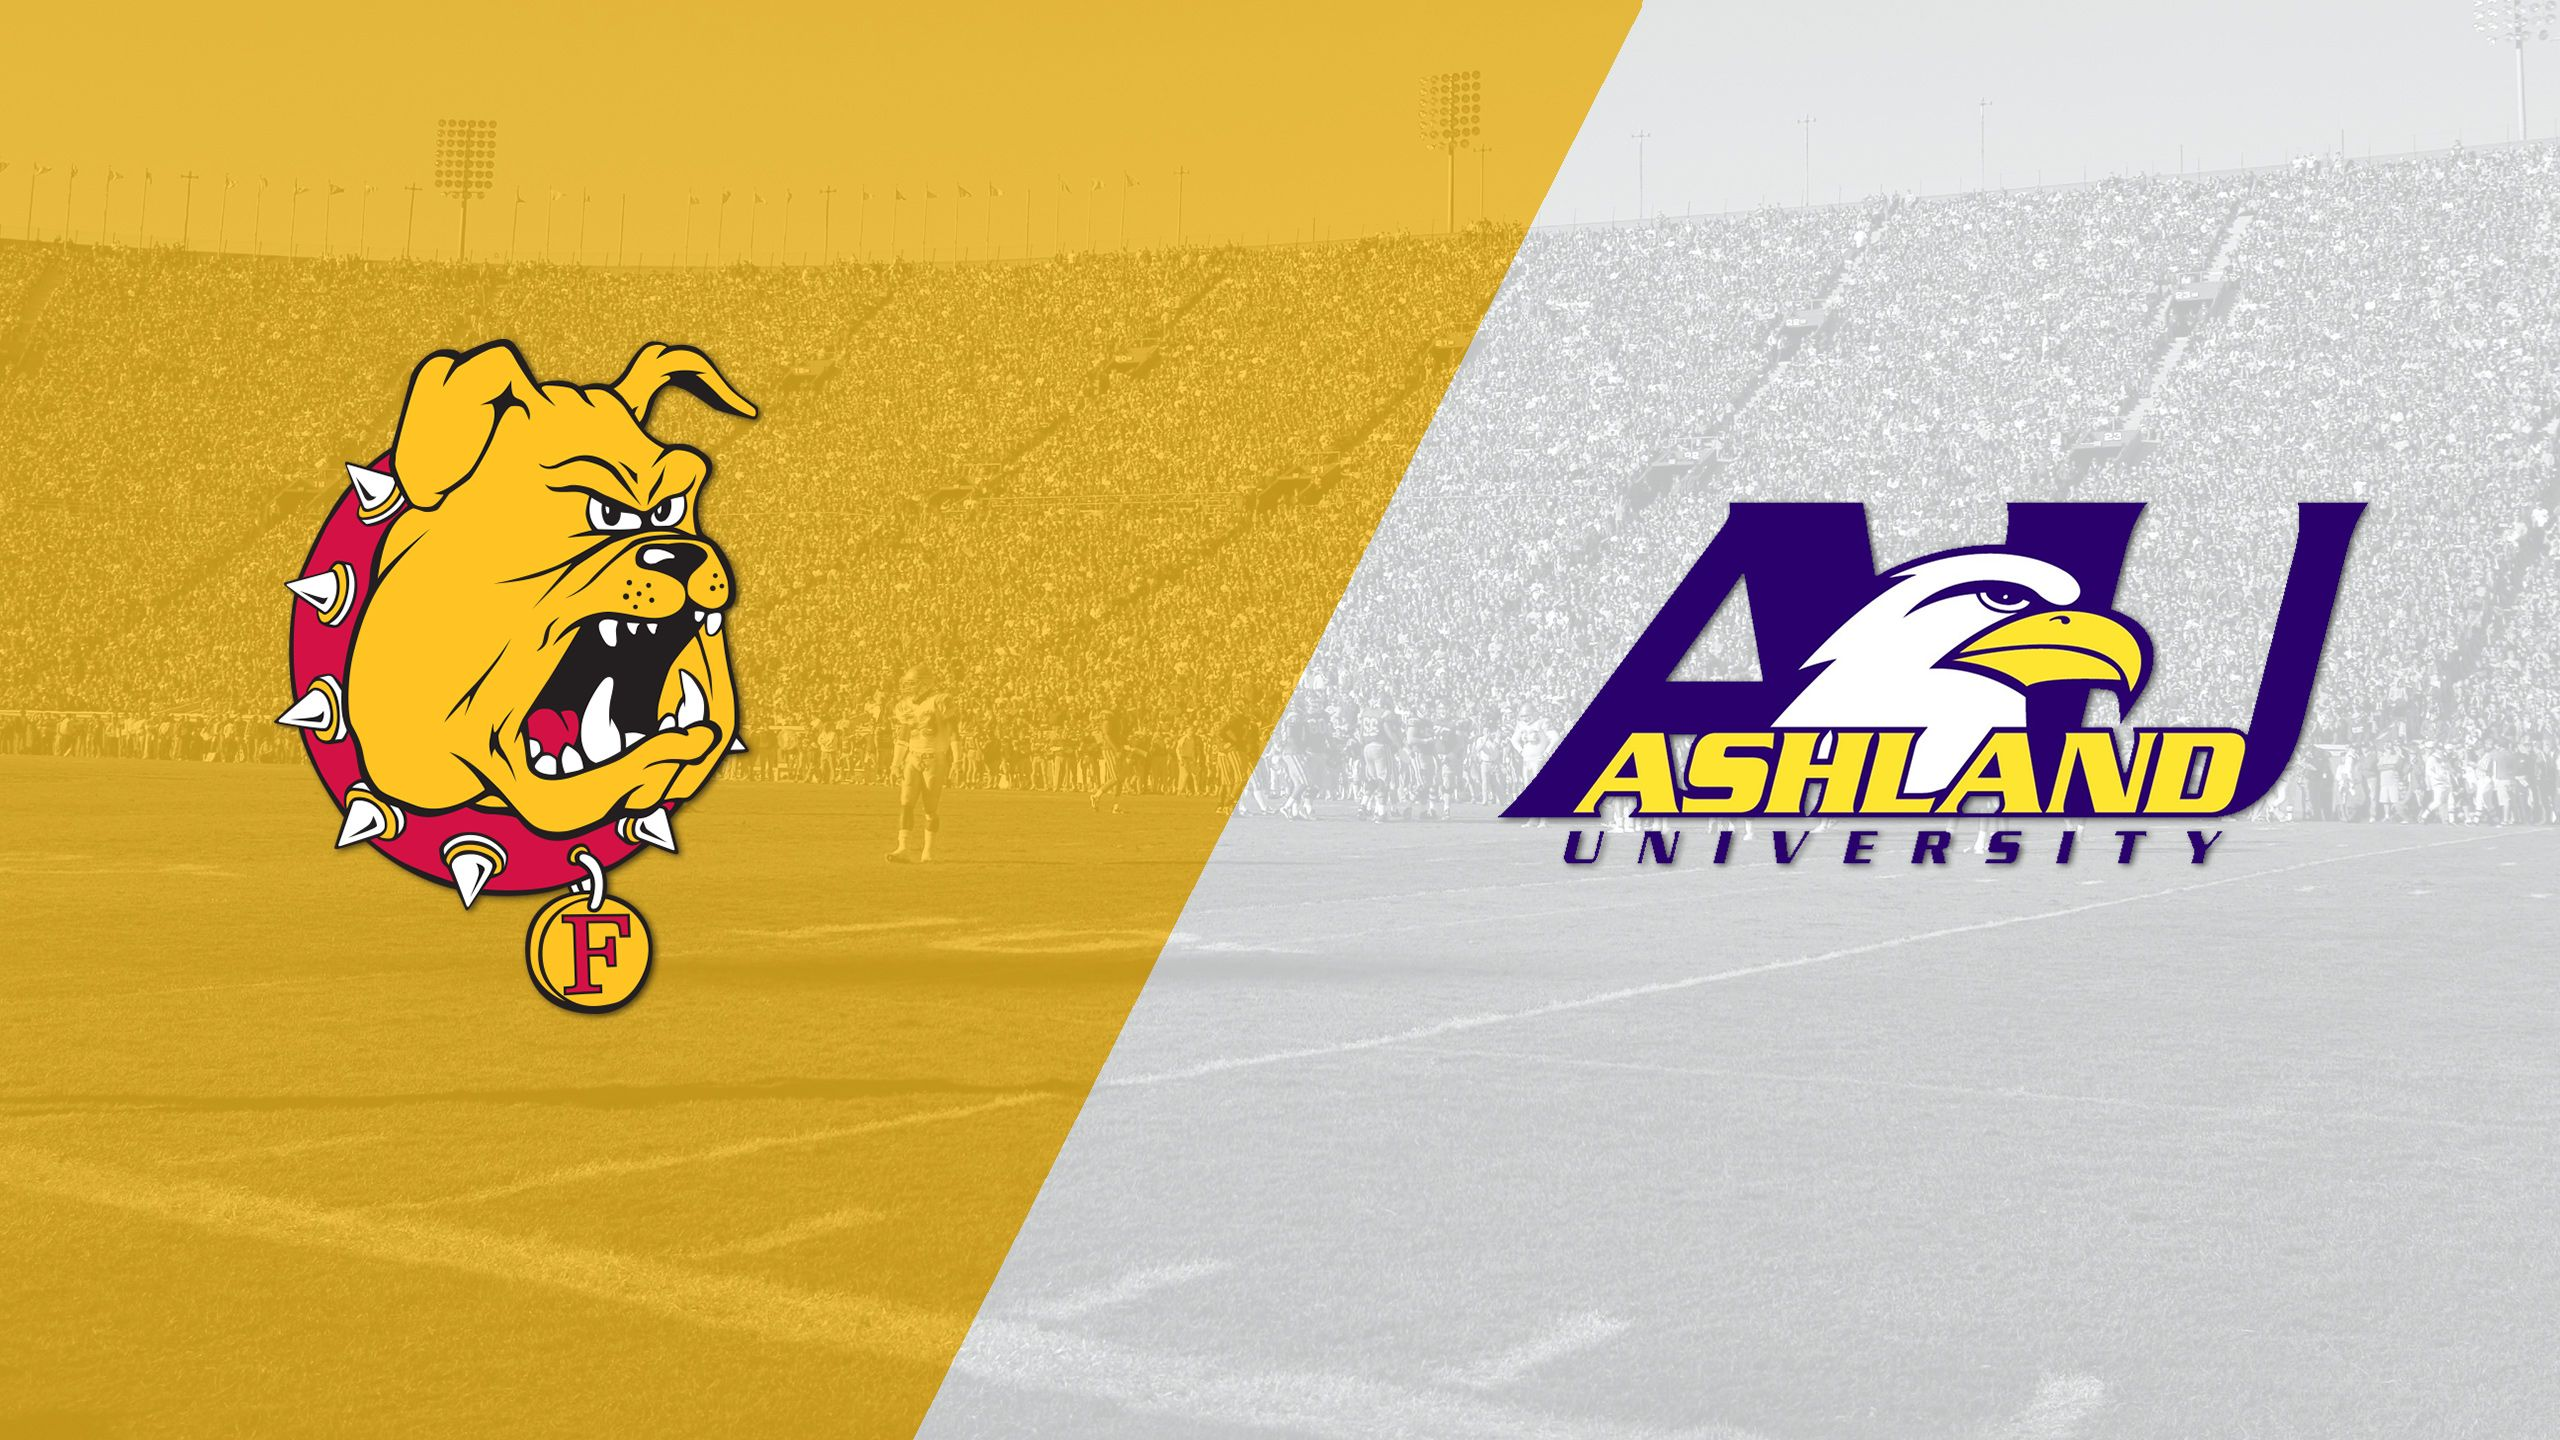 Ferris State (MI) vs. Ashland (Football)